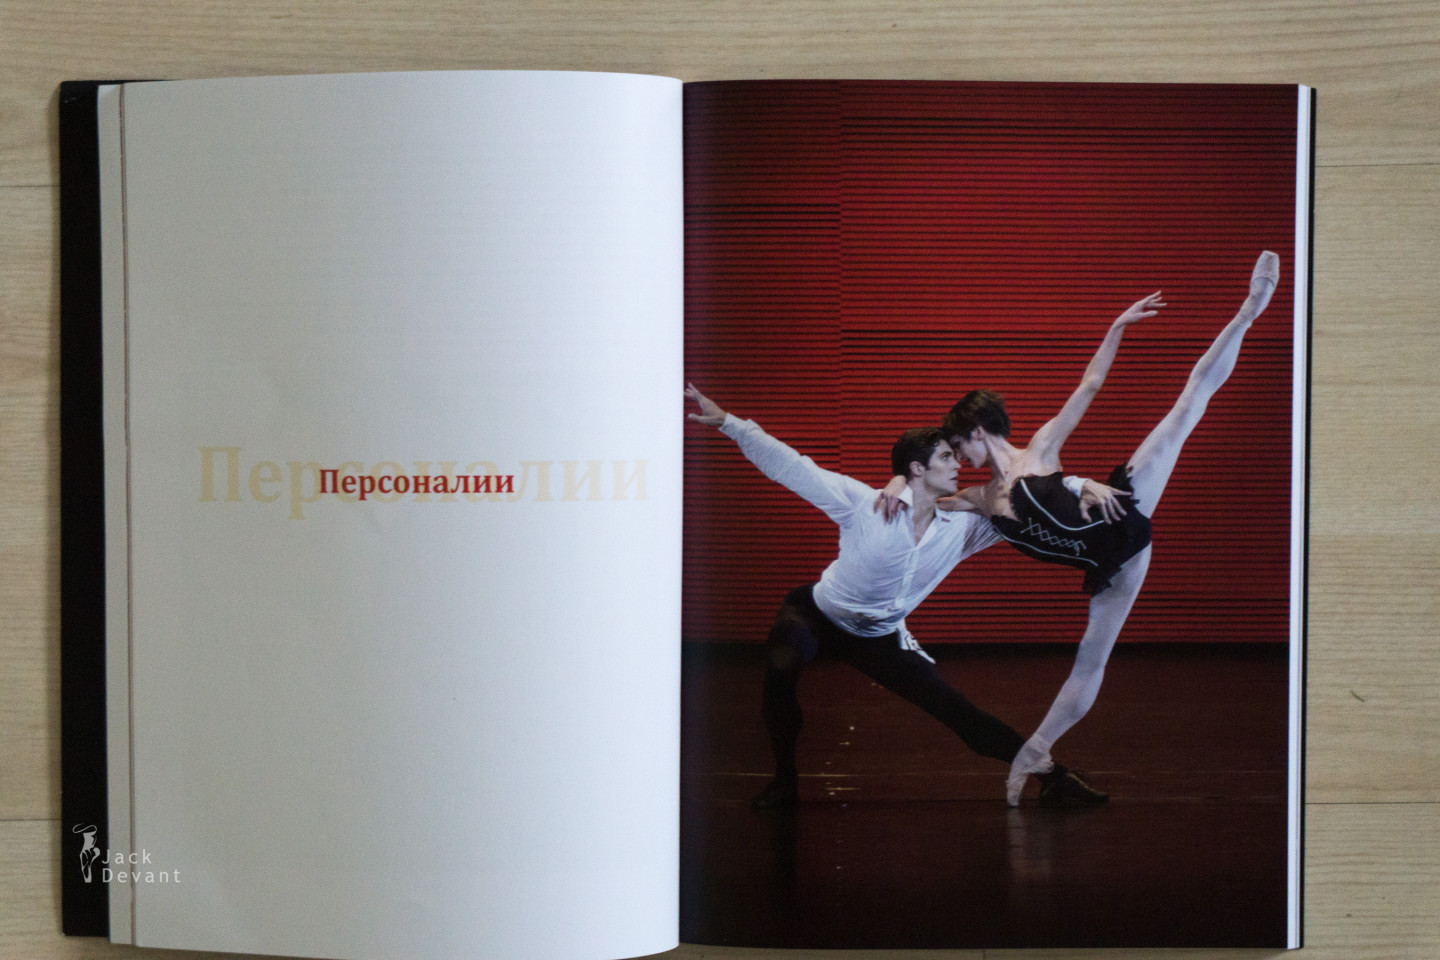 Photos for Kremlin Gala 2015 program and catalogue